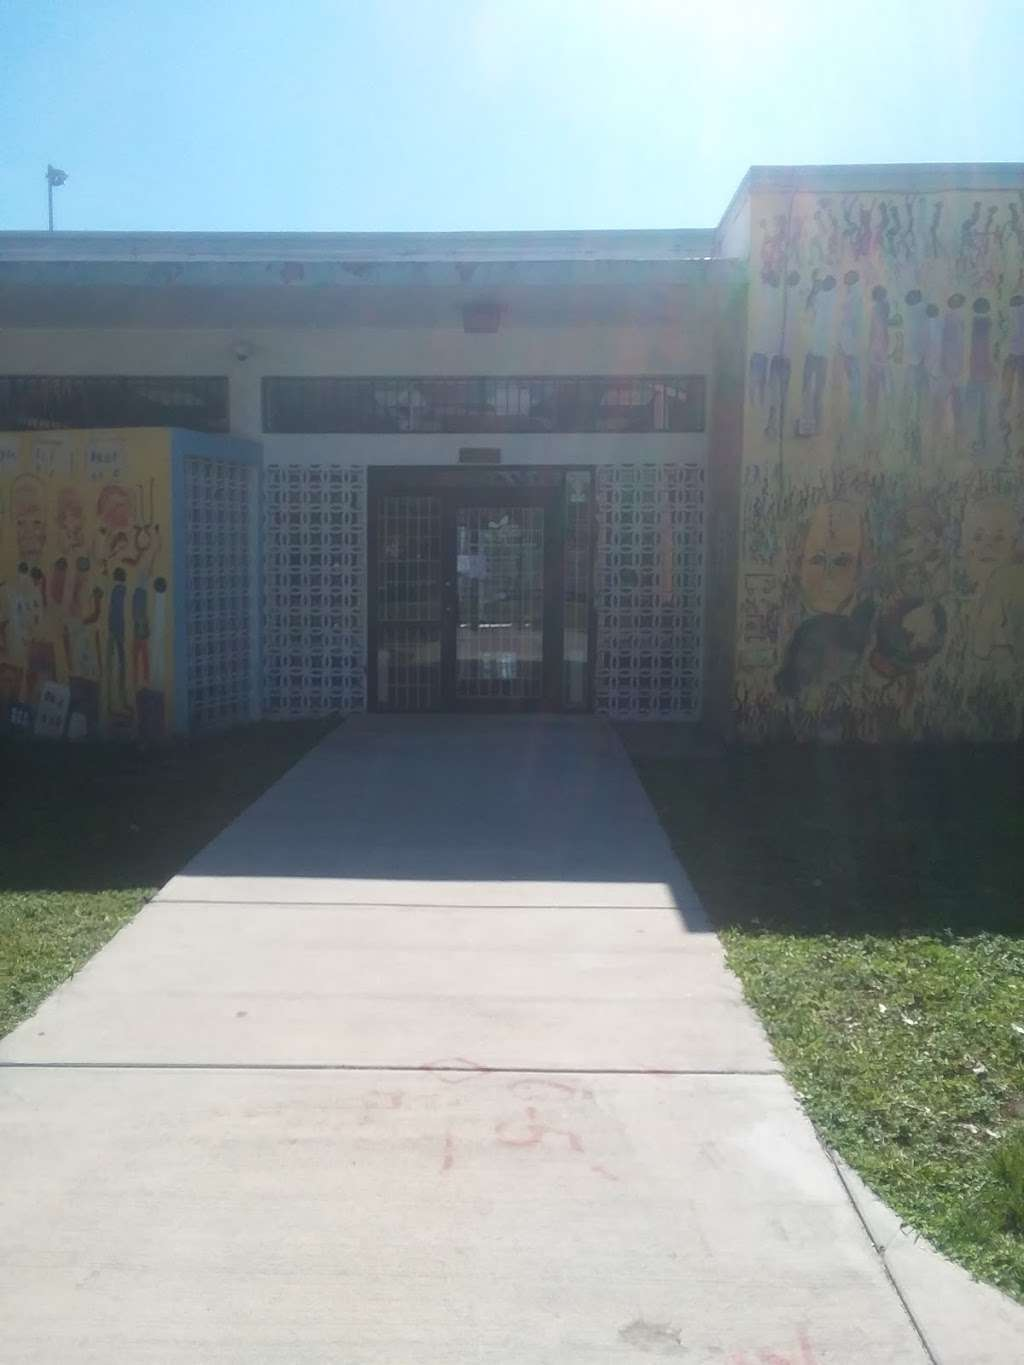 Culmer Overtown Branch Library - library  | Photo 6 of 9 | Address: 350 NW 13th St, Miami, FL 33136, USA | Phone: (305) 579-5322